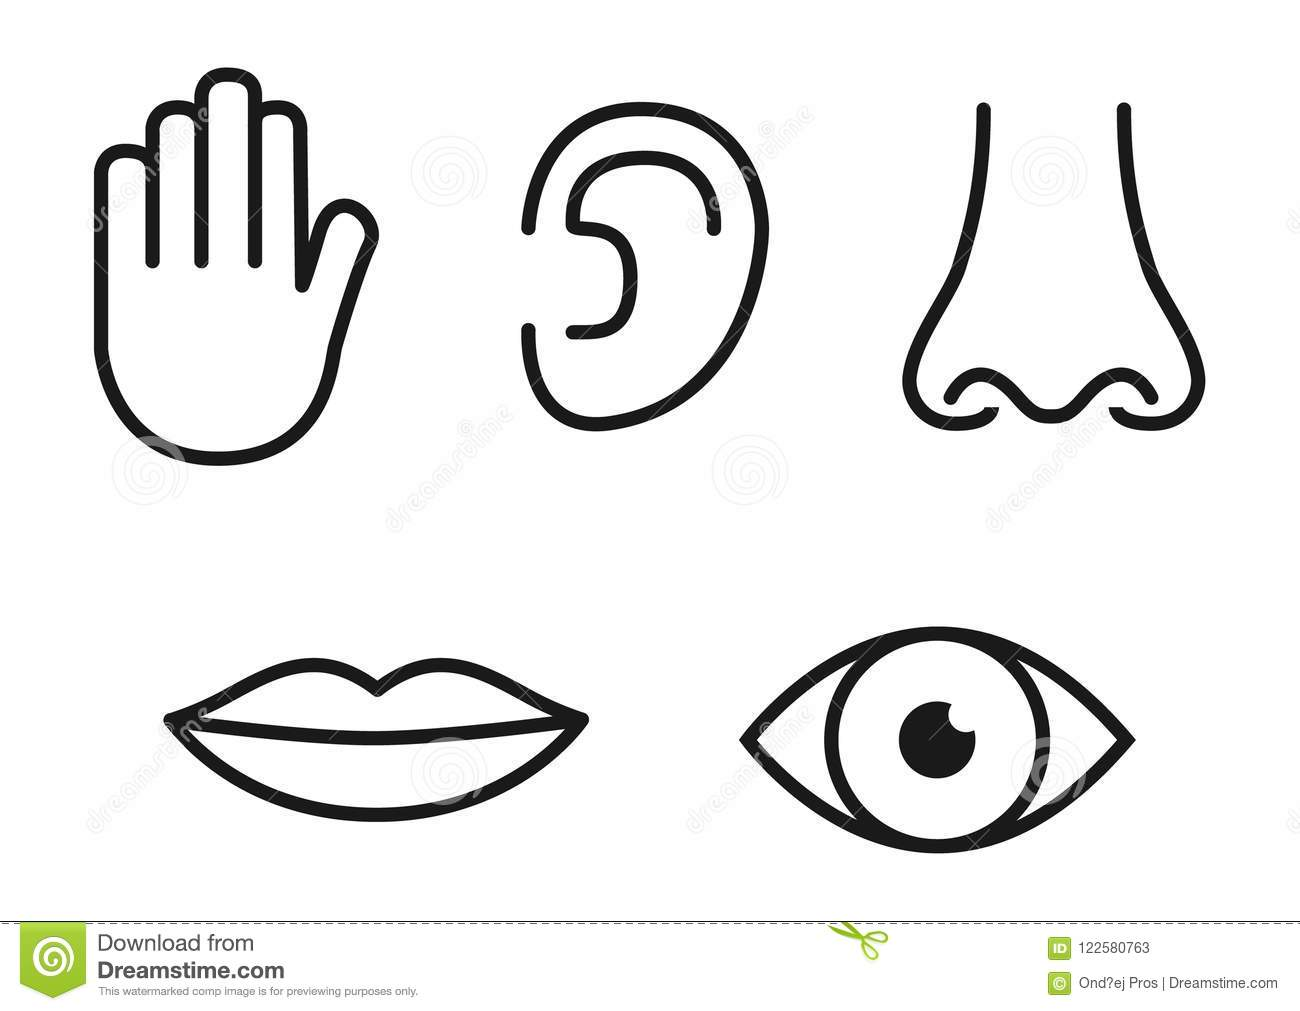 Outline Icon Set Of Five Human Senses Vision Eye Smell Nose Hearing Ear Touch Hand Taste